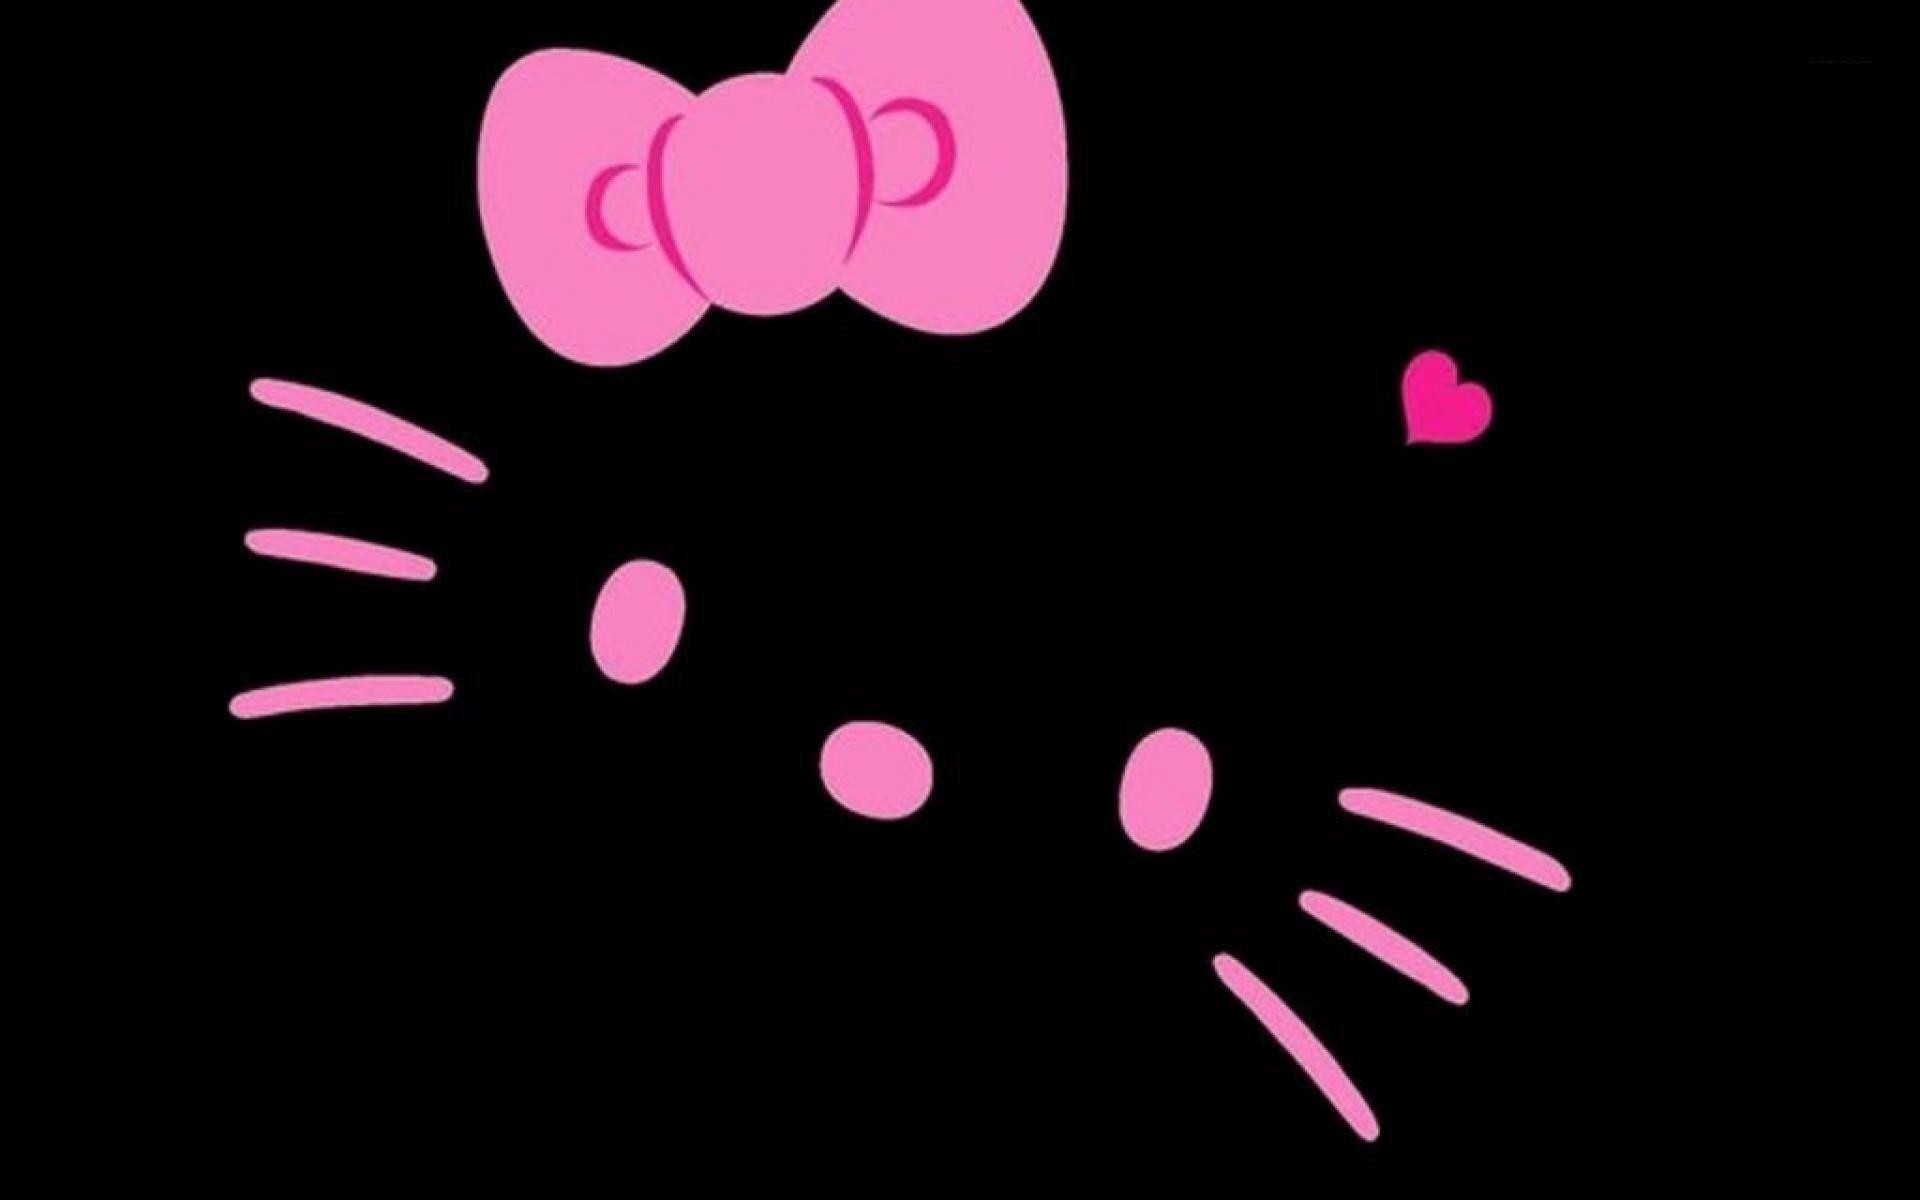 Good Wallpaper Mac Hello Kitty - 586531-top-hello-kitty-wallpaper-pink-and-black-1920x1200  Picture_934765.jpg